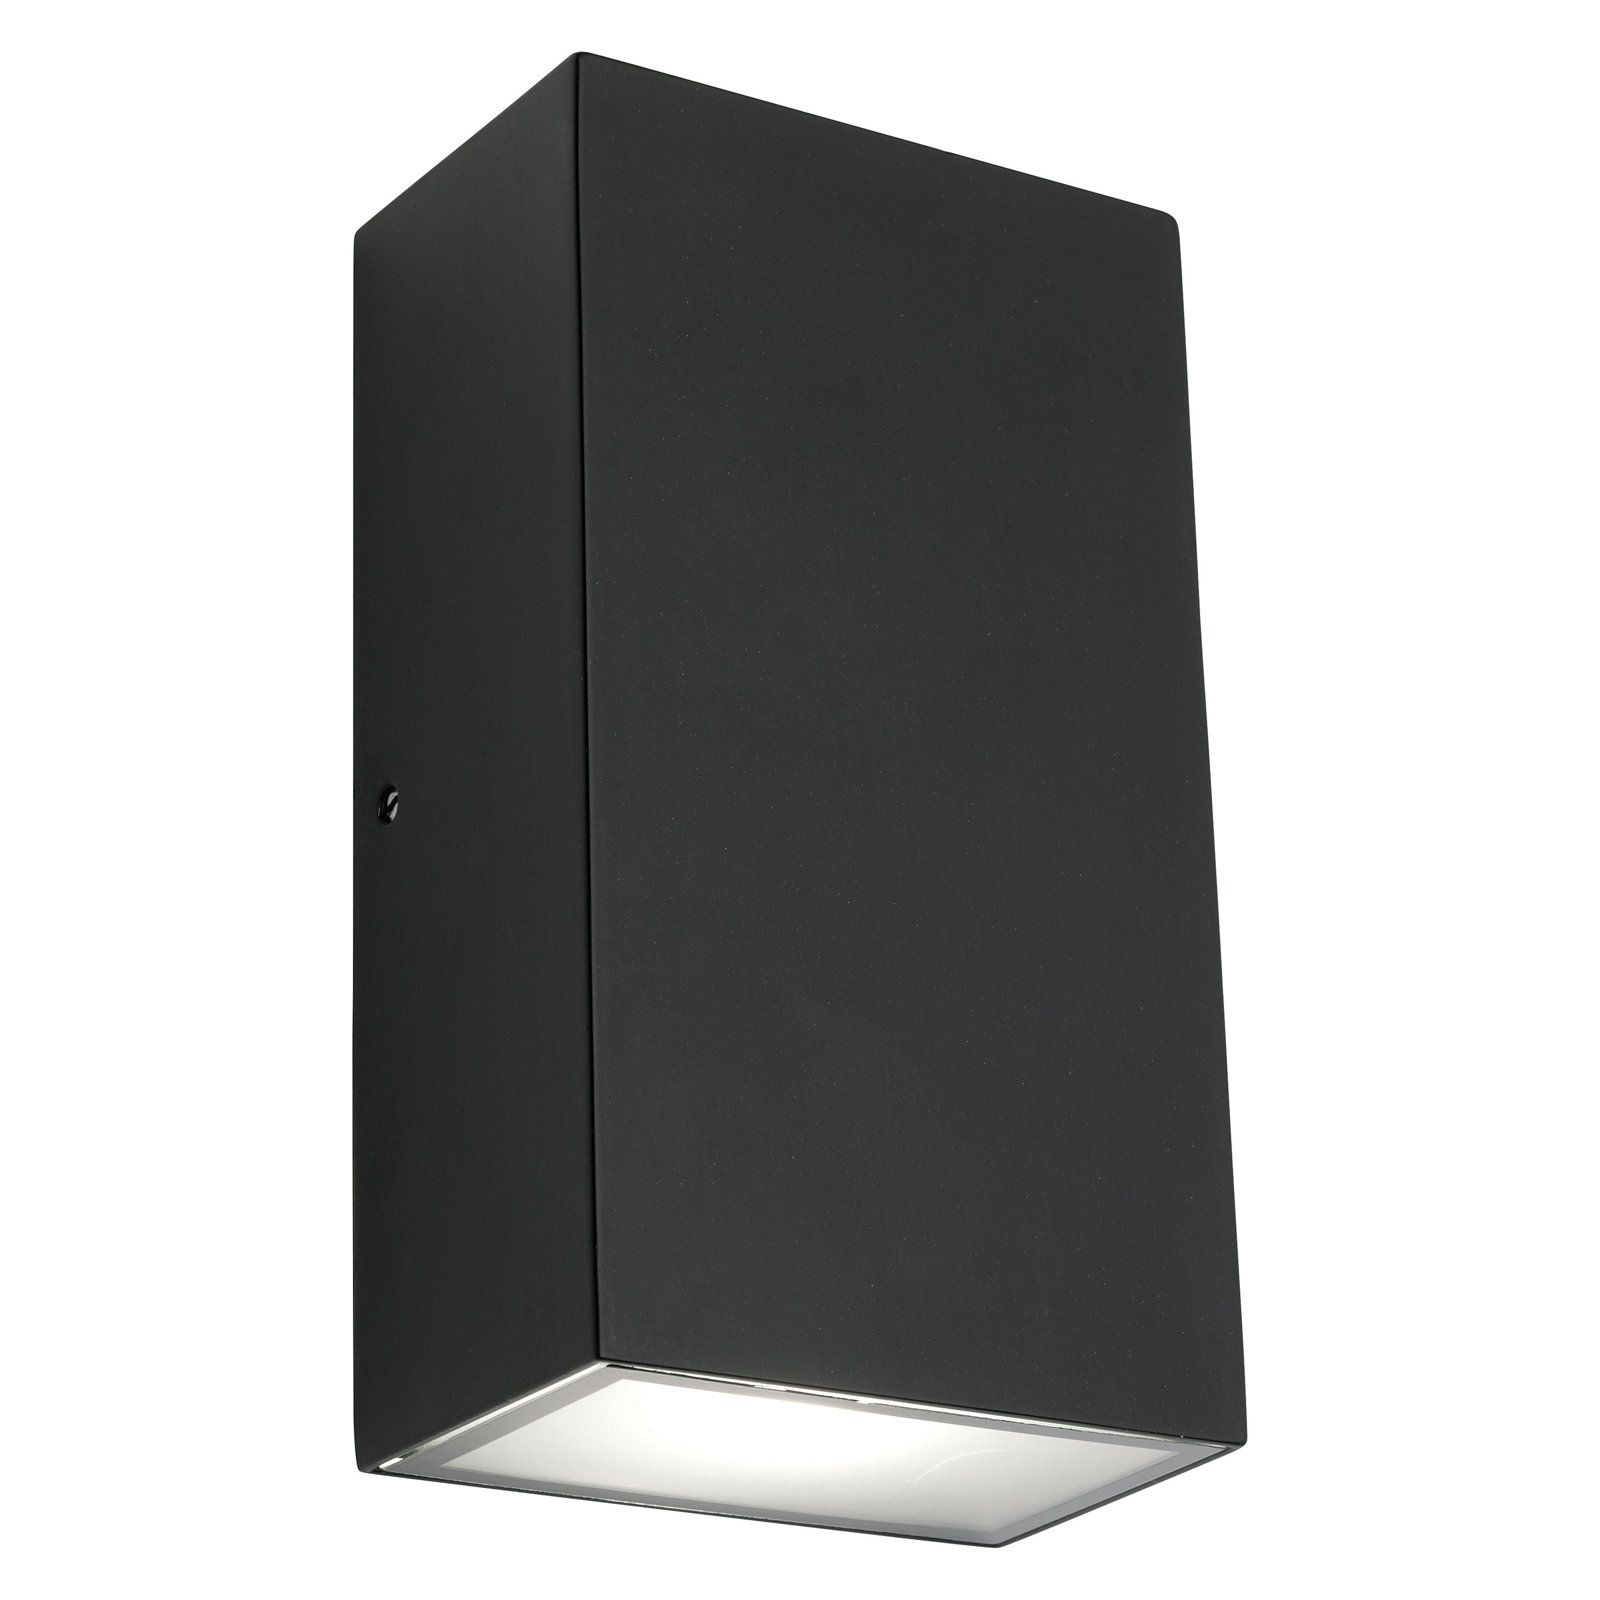 Mercator Brenton LED Square Black Up/Down Exterior Wall Light